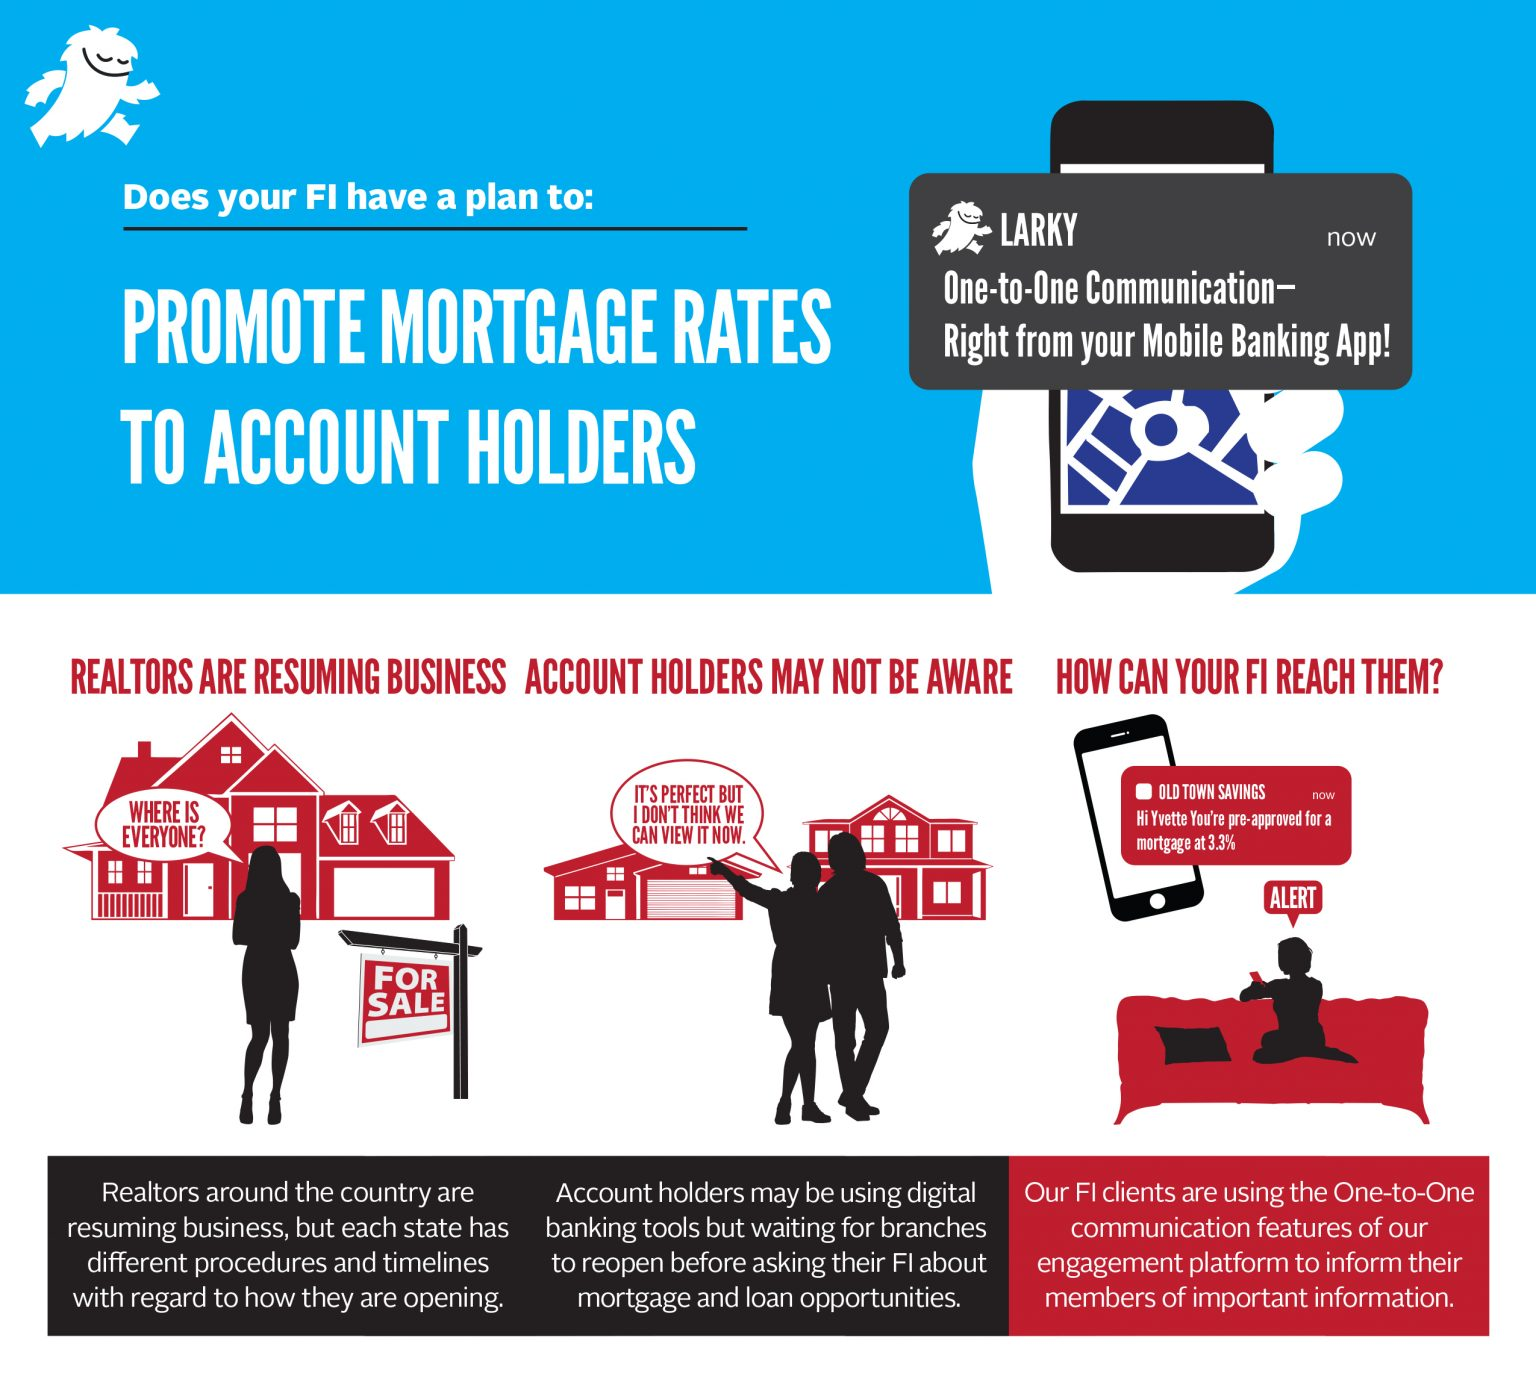 Promote Mortgage Rates to Account Holders